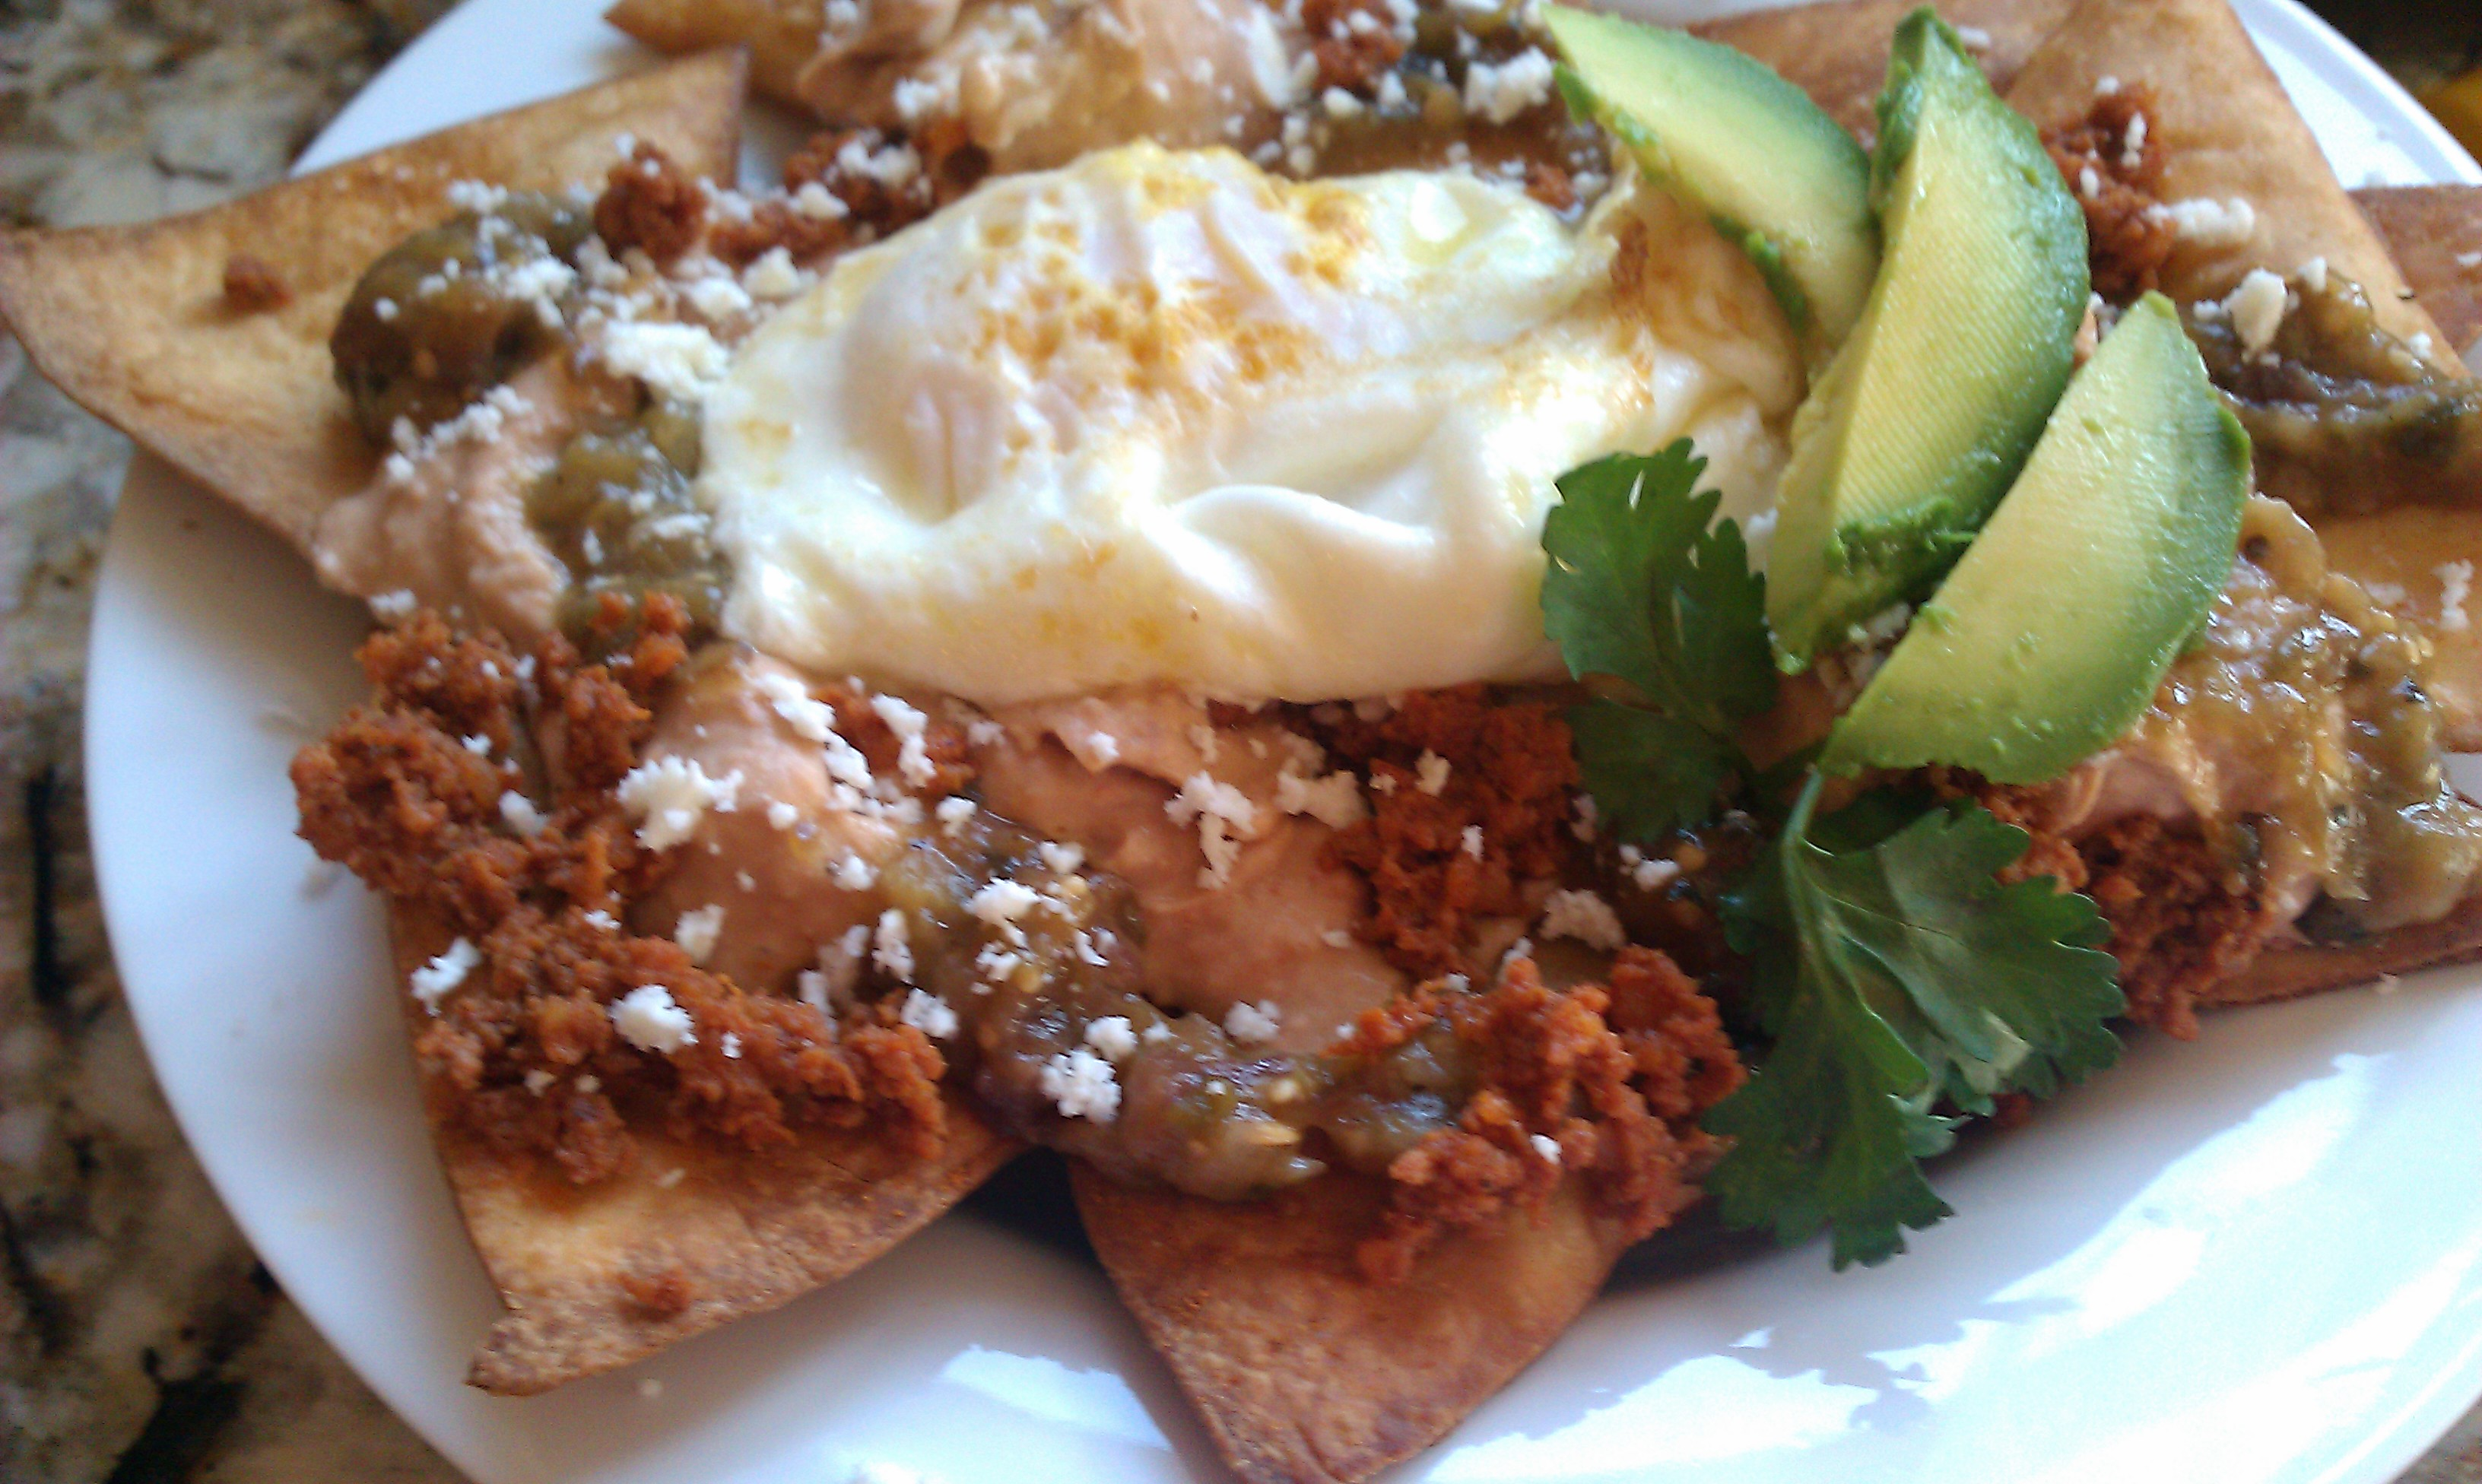 Breakfast Sunshine Platter (Chilaqueles with tomatillo sauce)